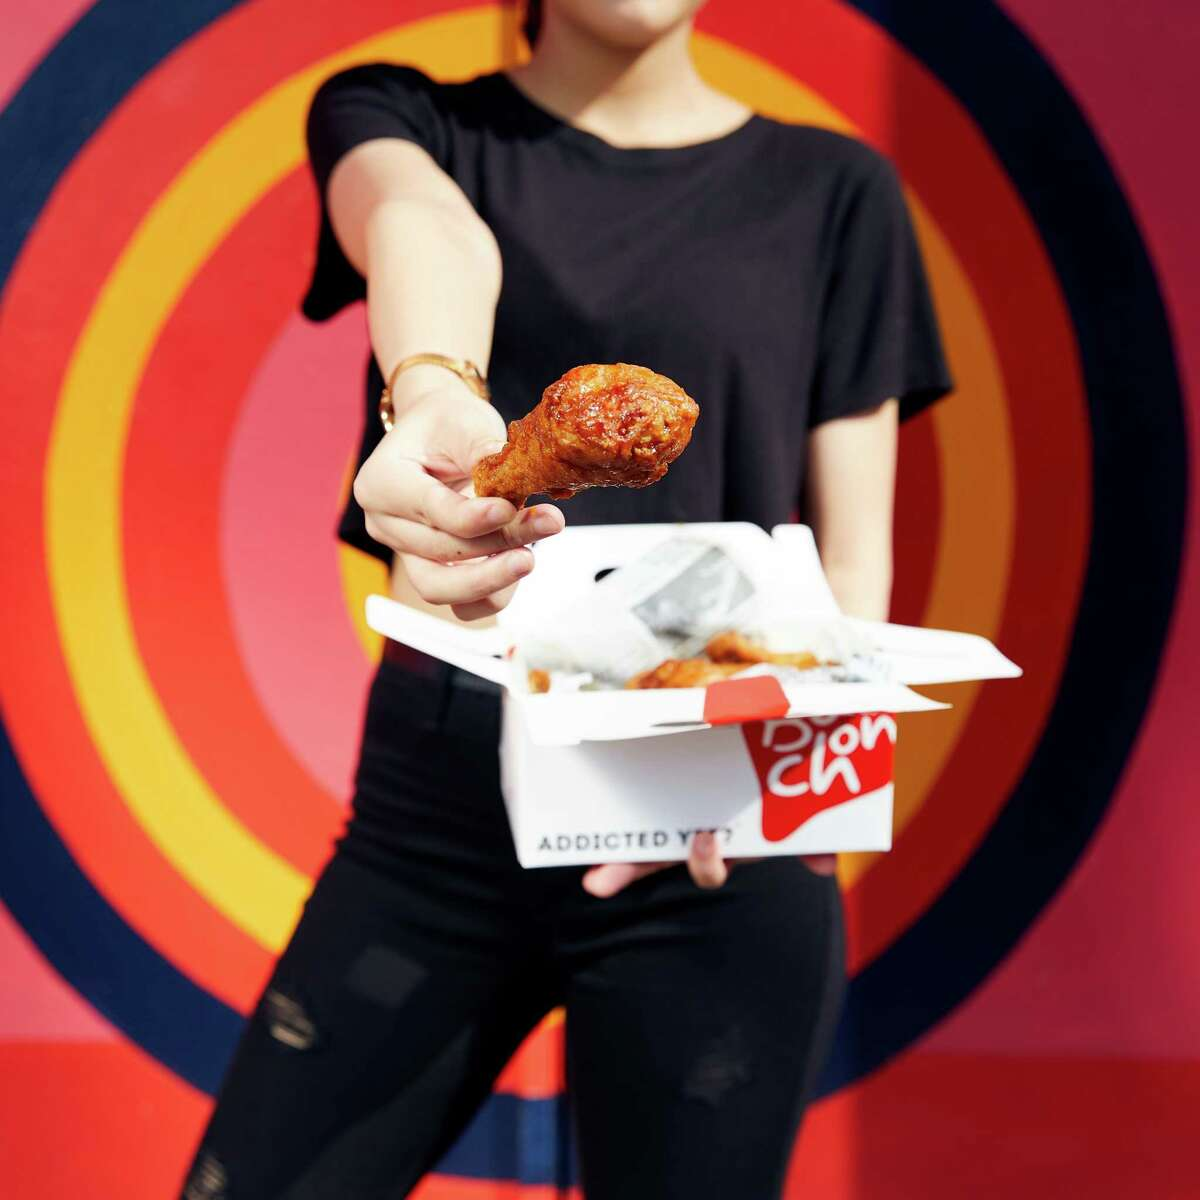 Korean fried chicken brand Bonchon has announced it will open in Midtown at 2100 Travel in 2020.